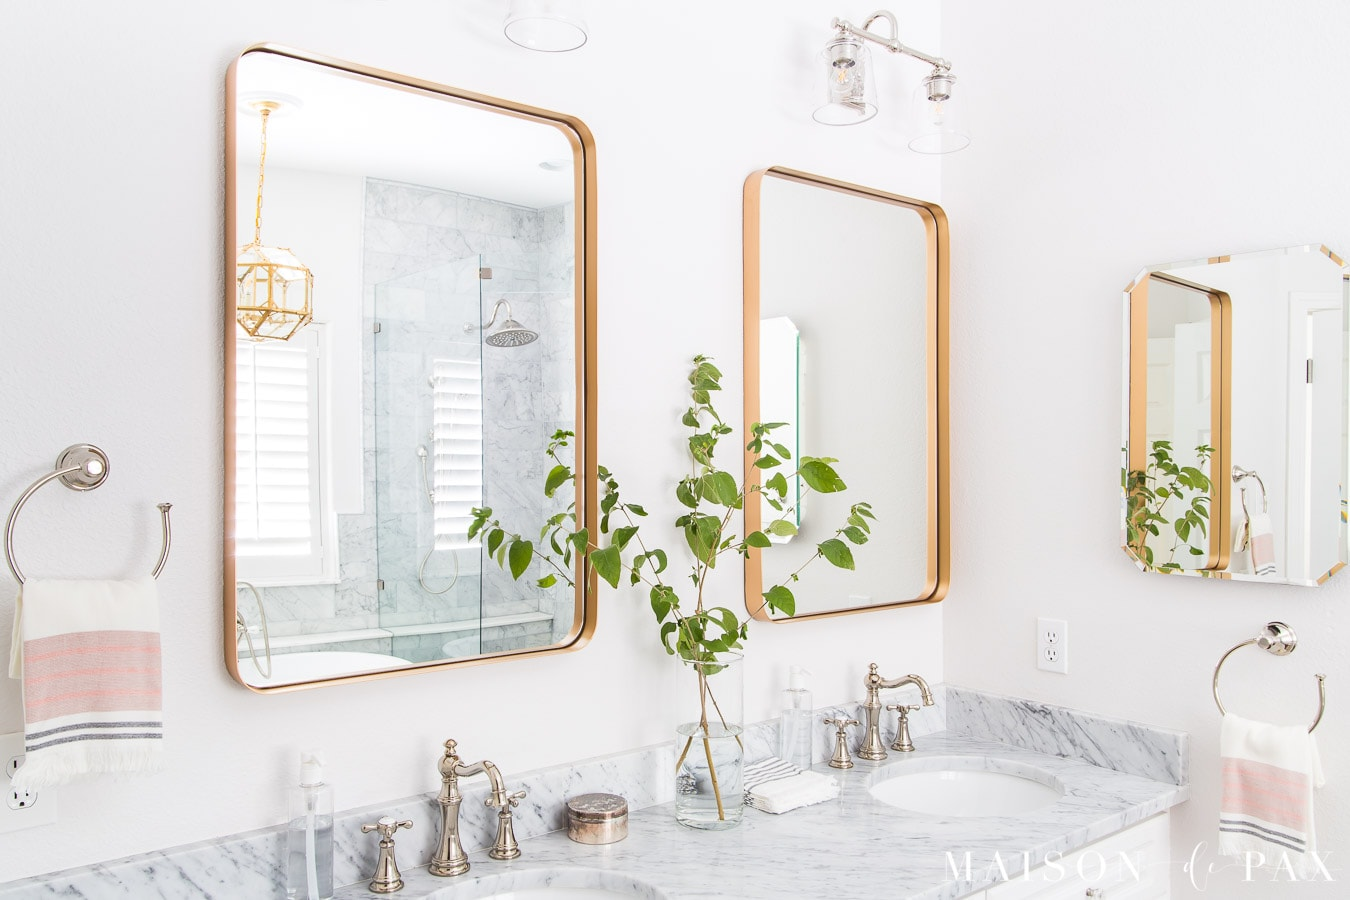 mid century metal gold mirrors, marble counters, and white cabinets in bathroom | Maison de Pax